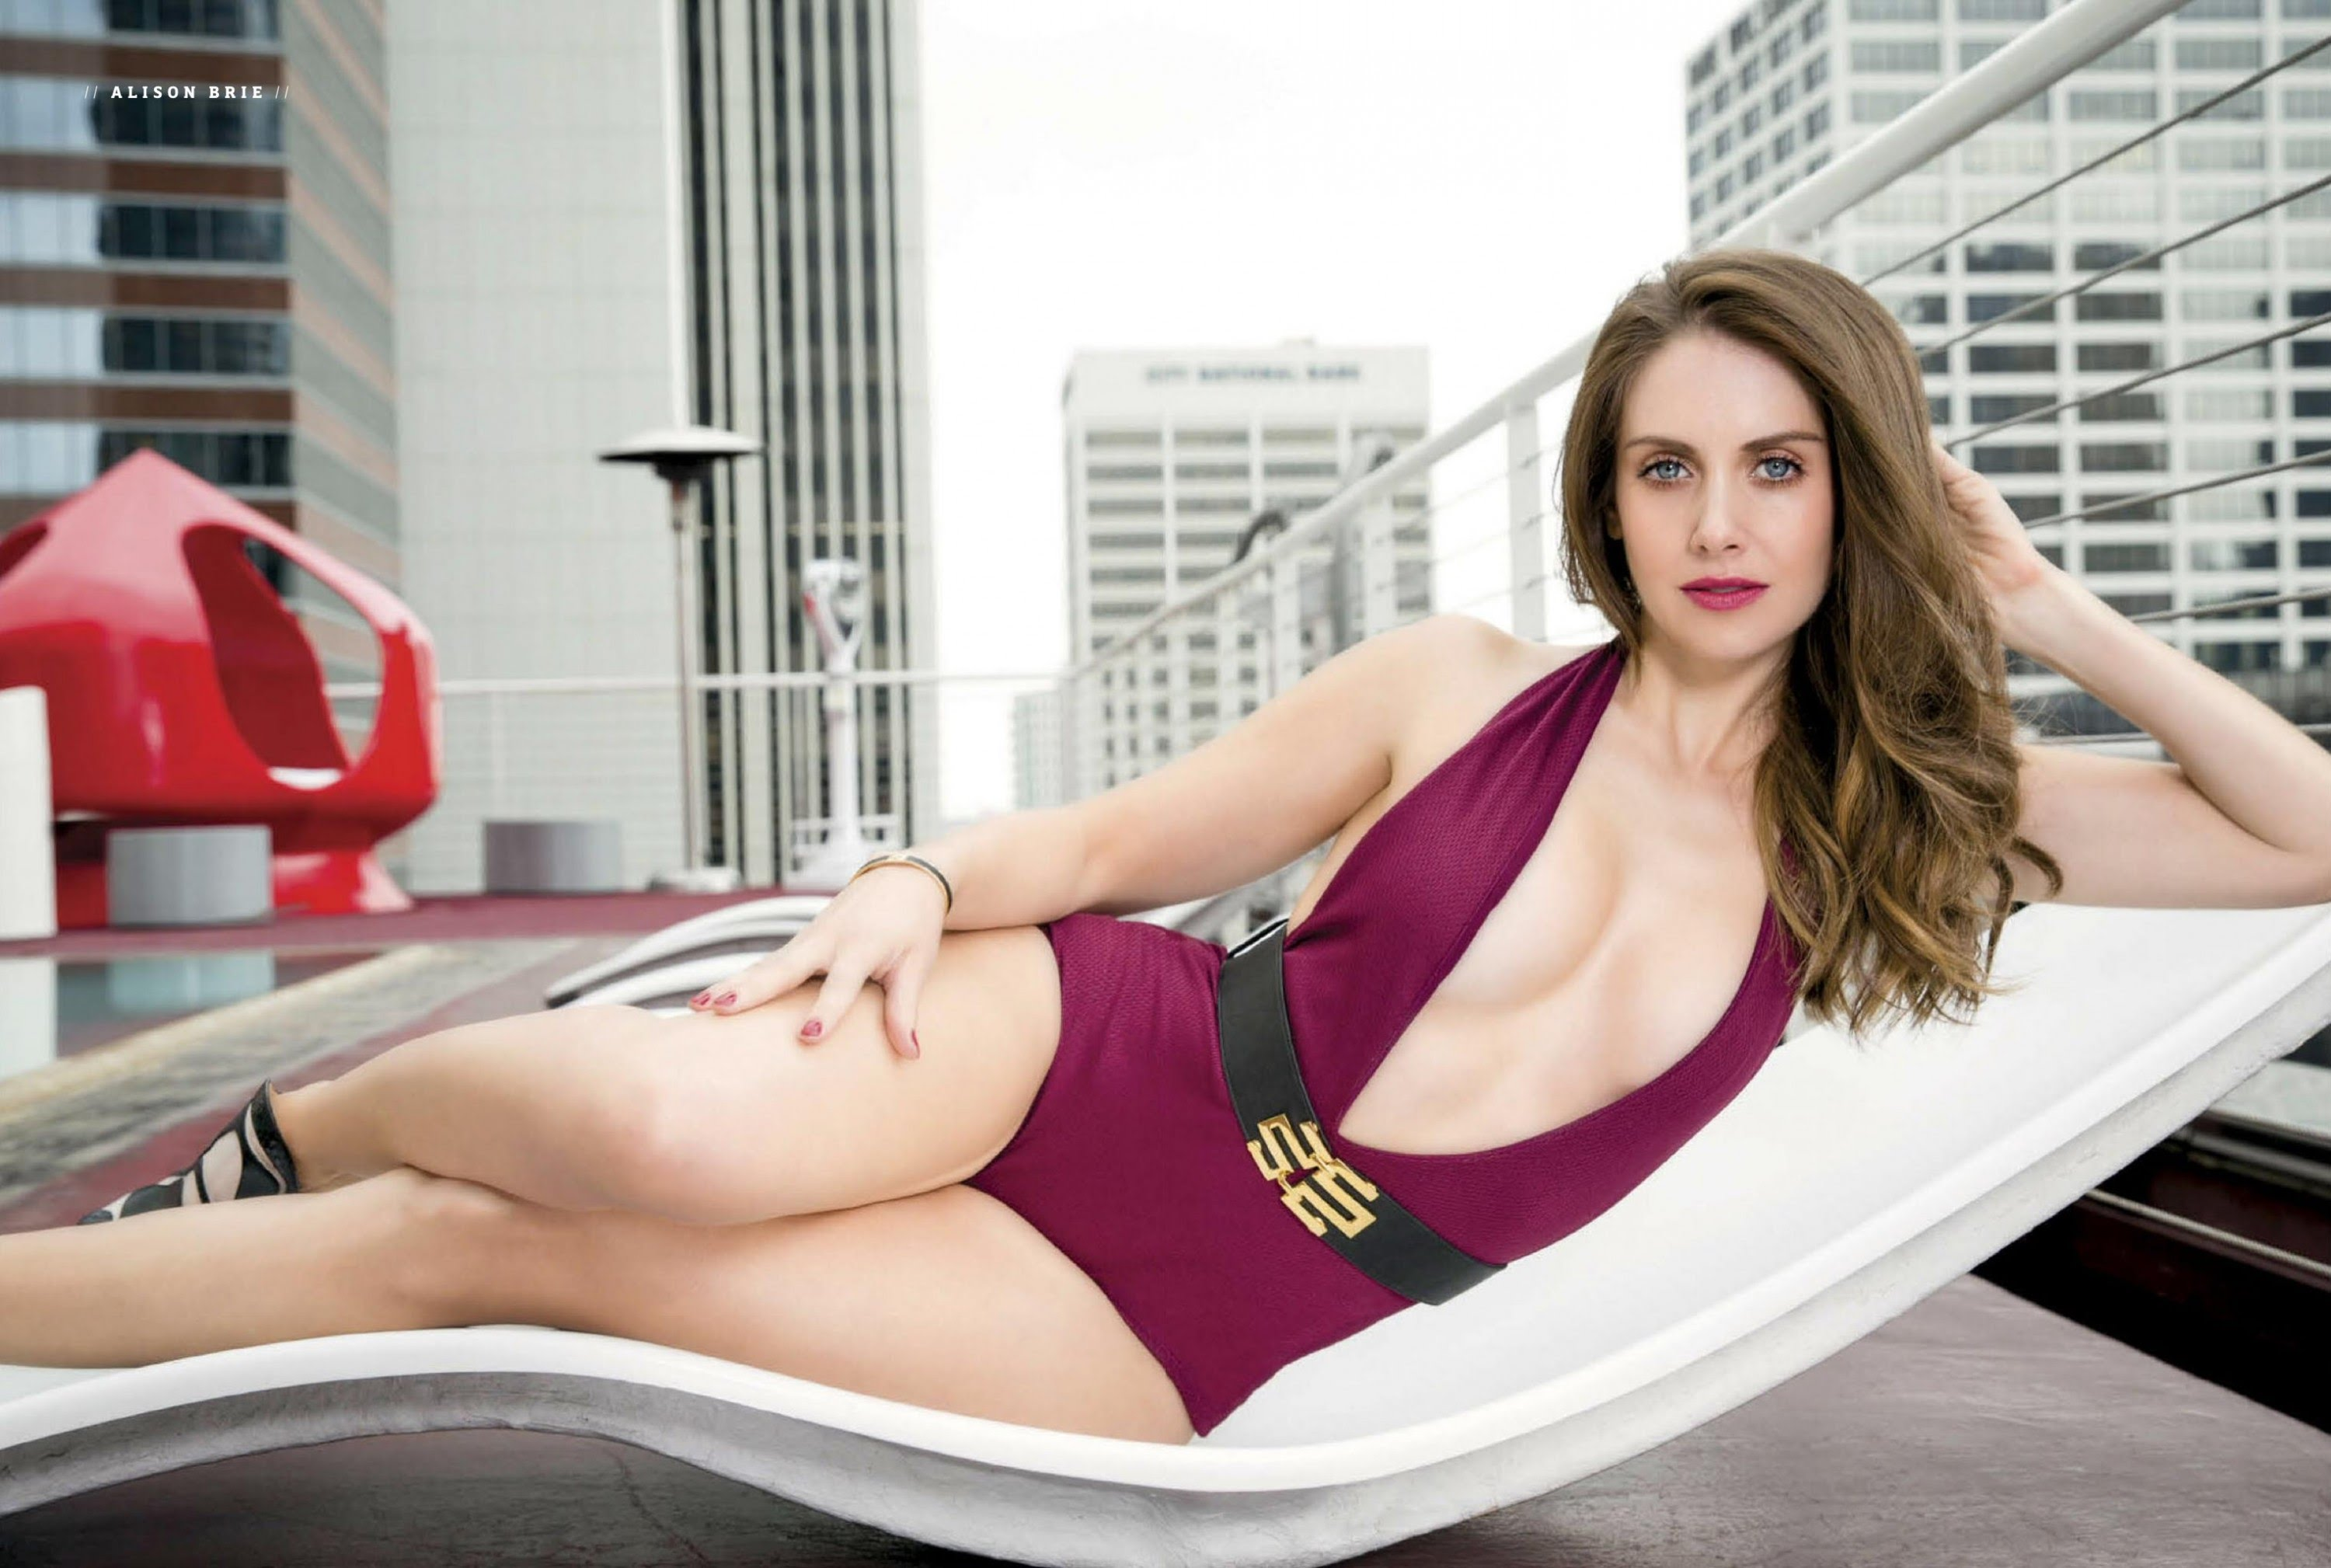 Alison Brie Hot Photoshoot